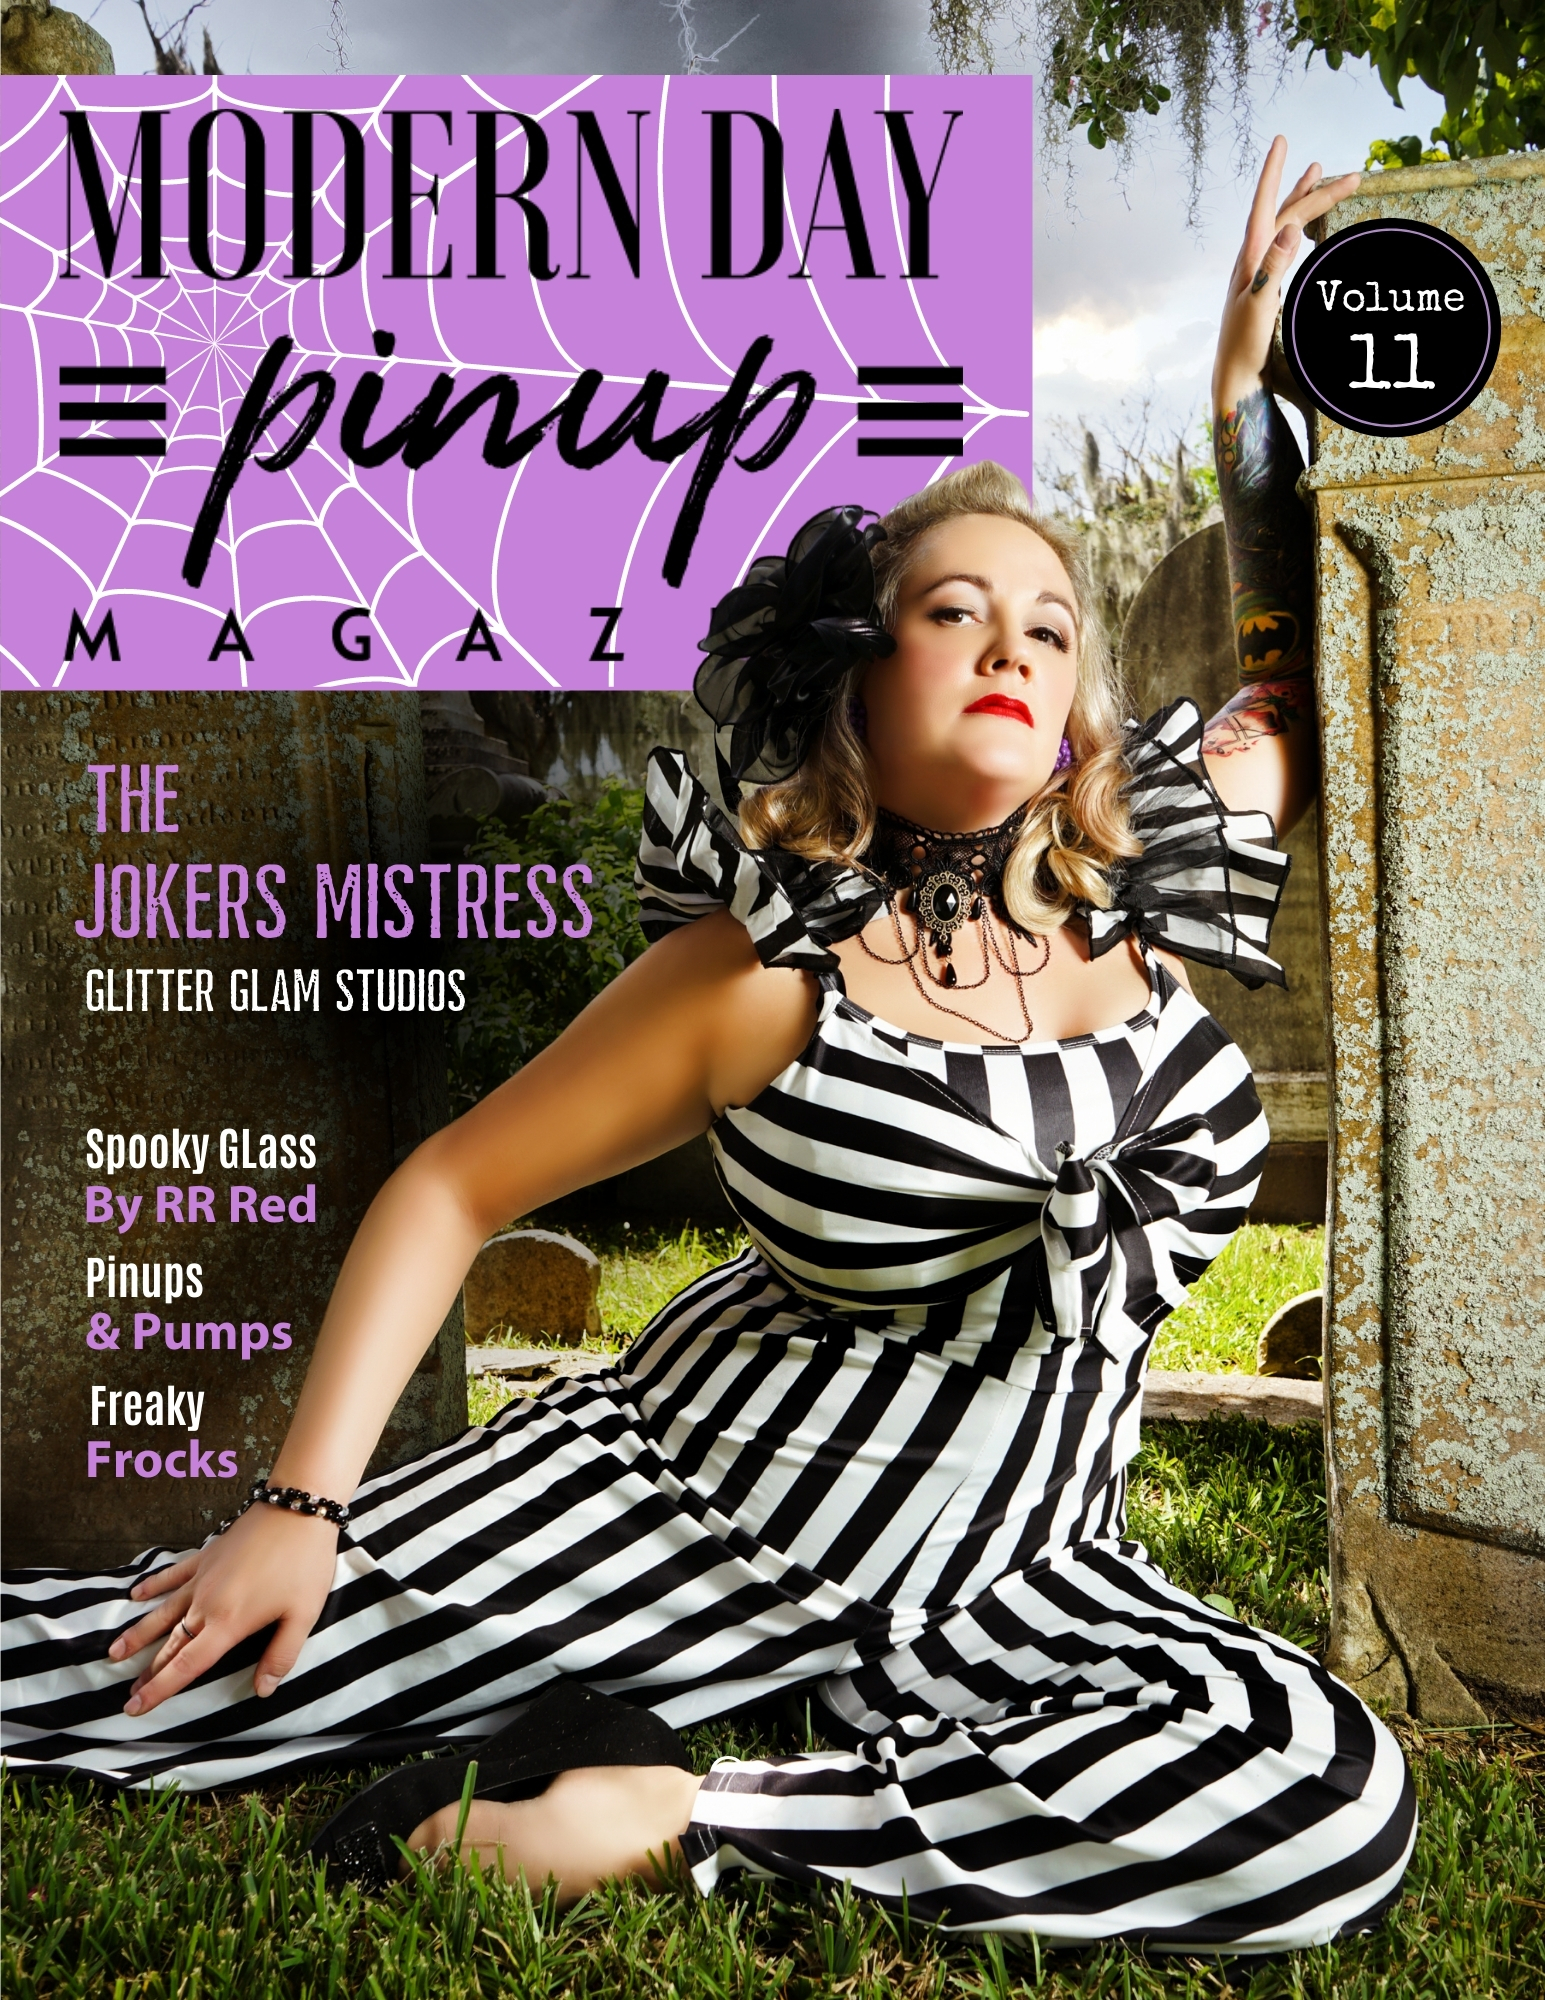 Modern Day Pin Up Magazine Halloween Special Edition Volume 11